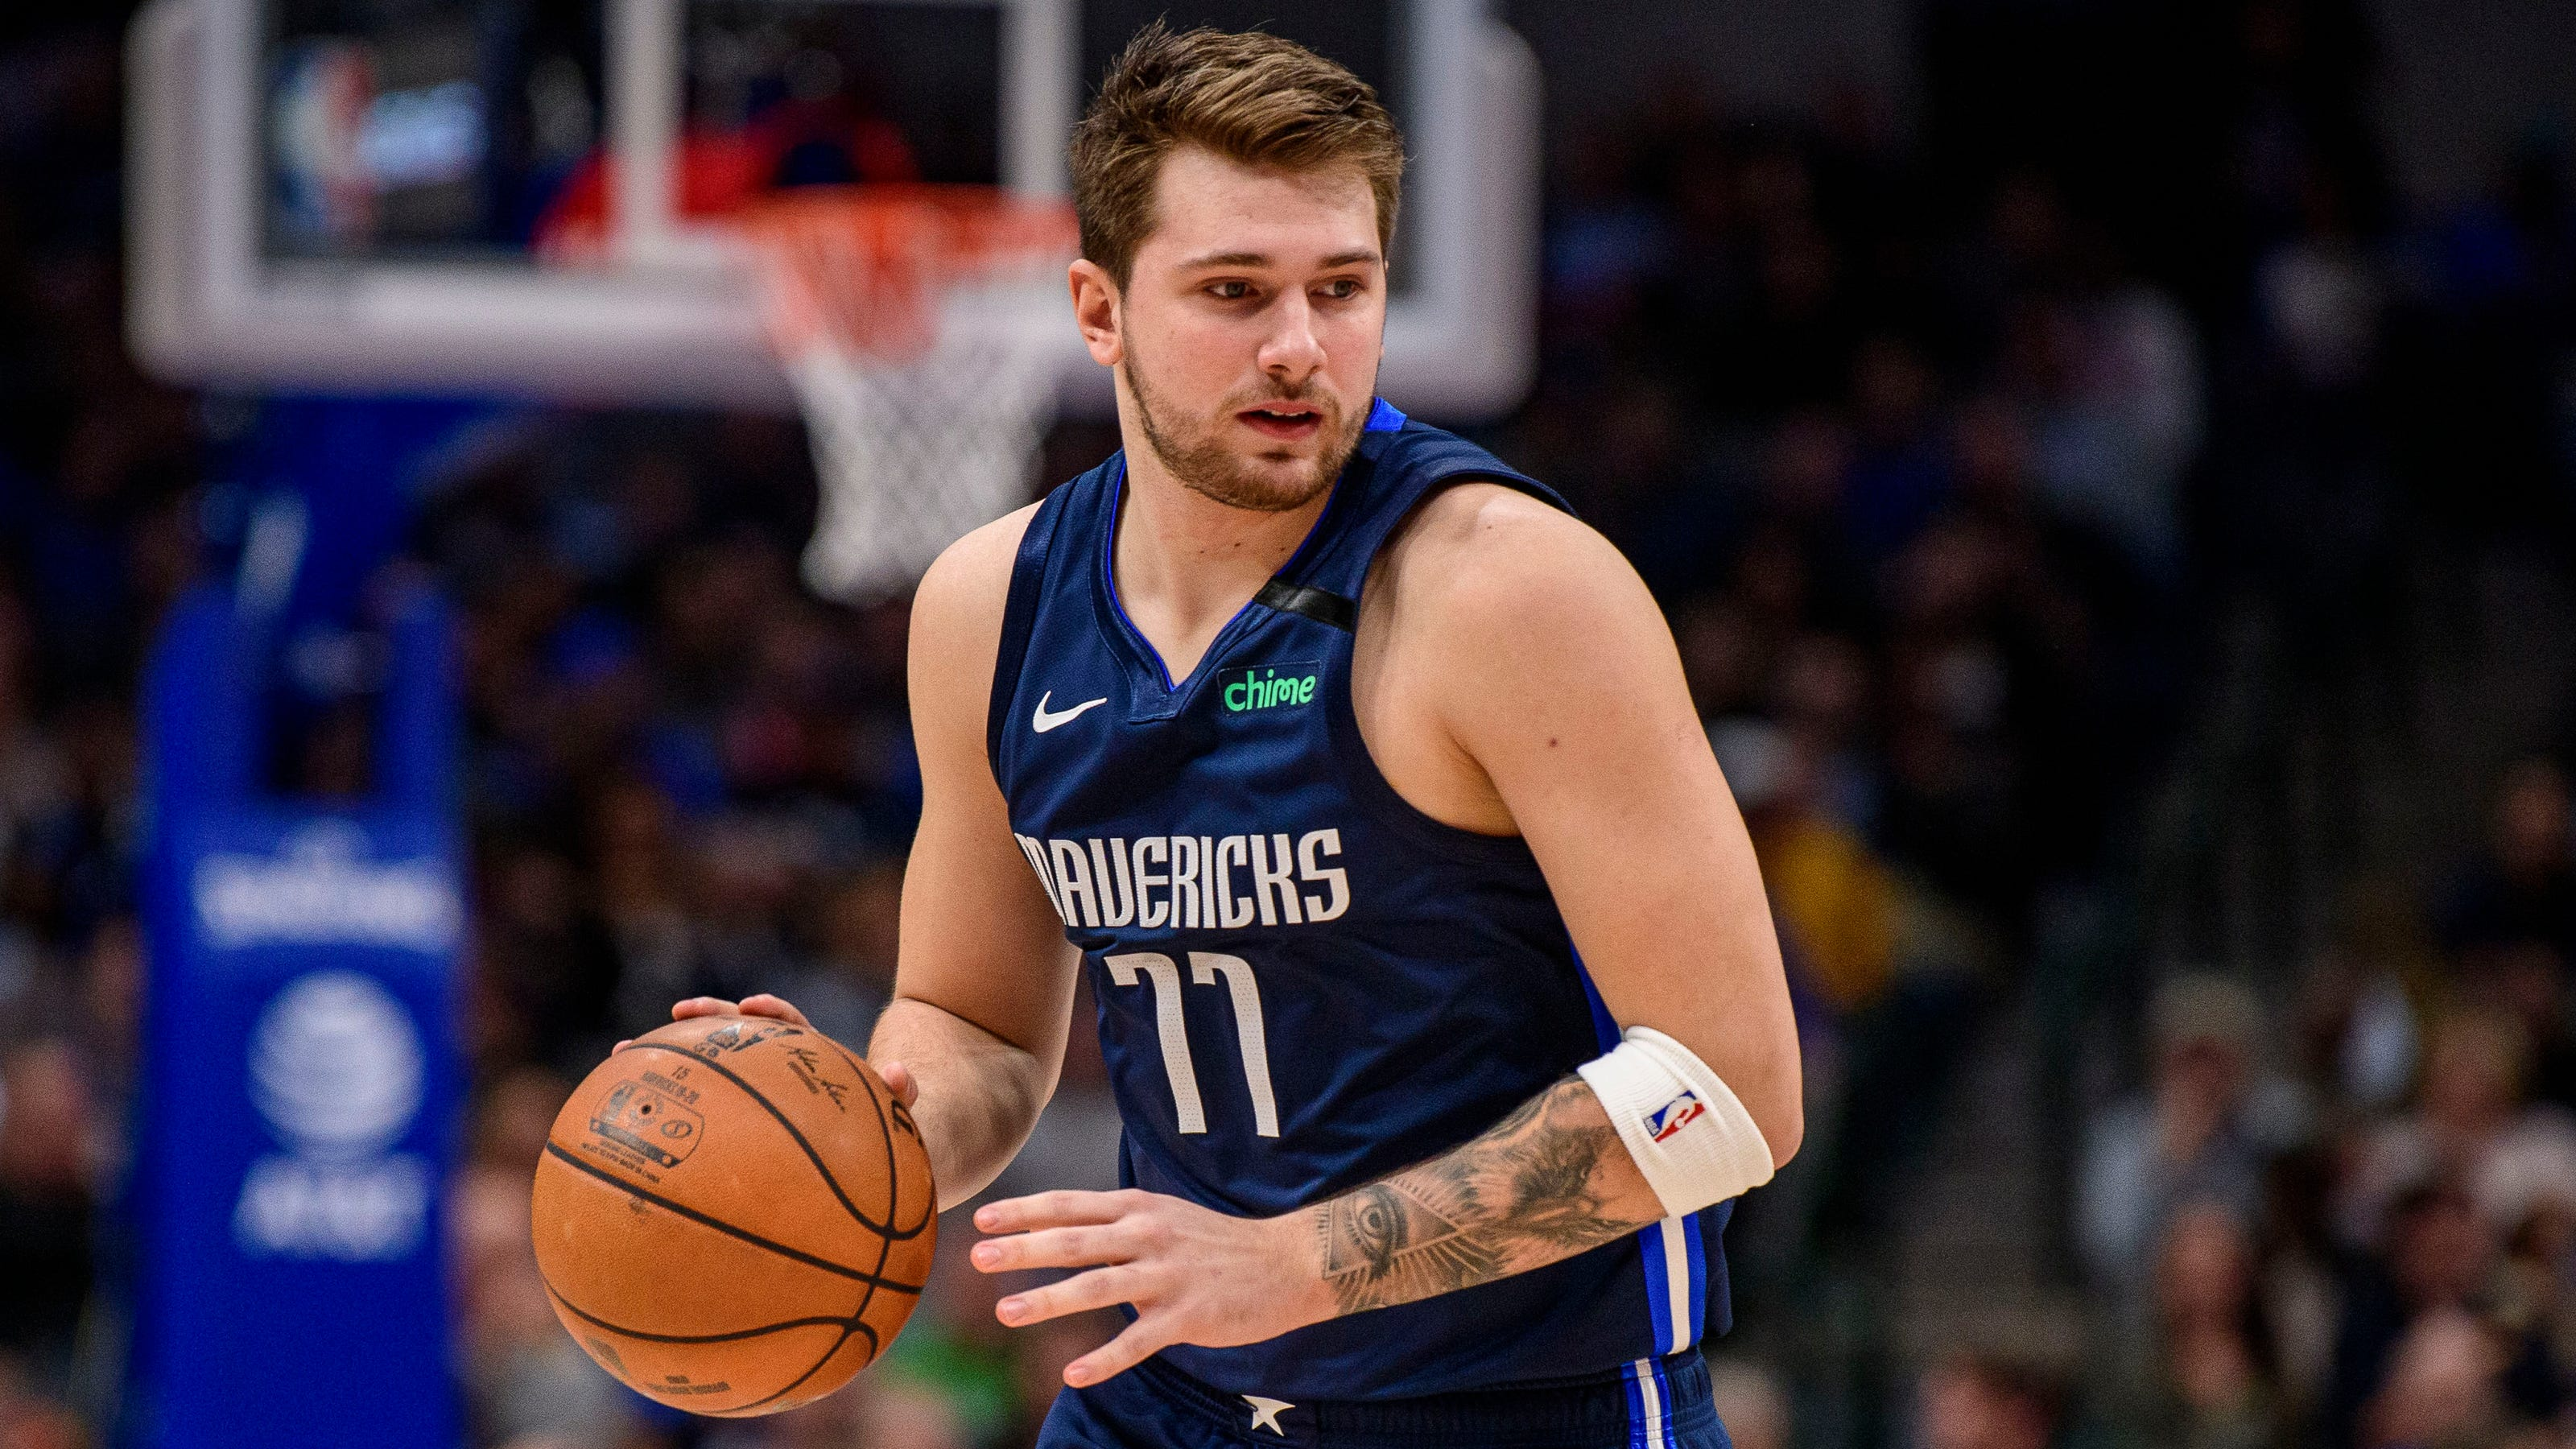 Luka Doncic may be even better for Dallas Mavericks in 2020-21 season